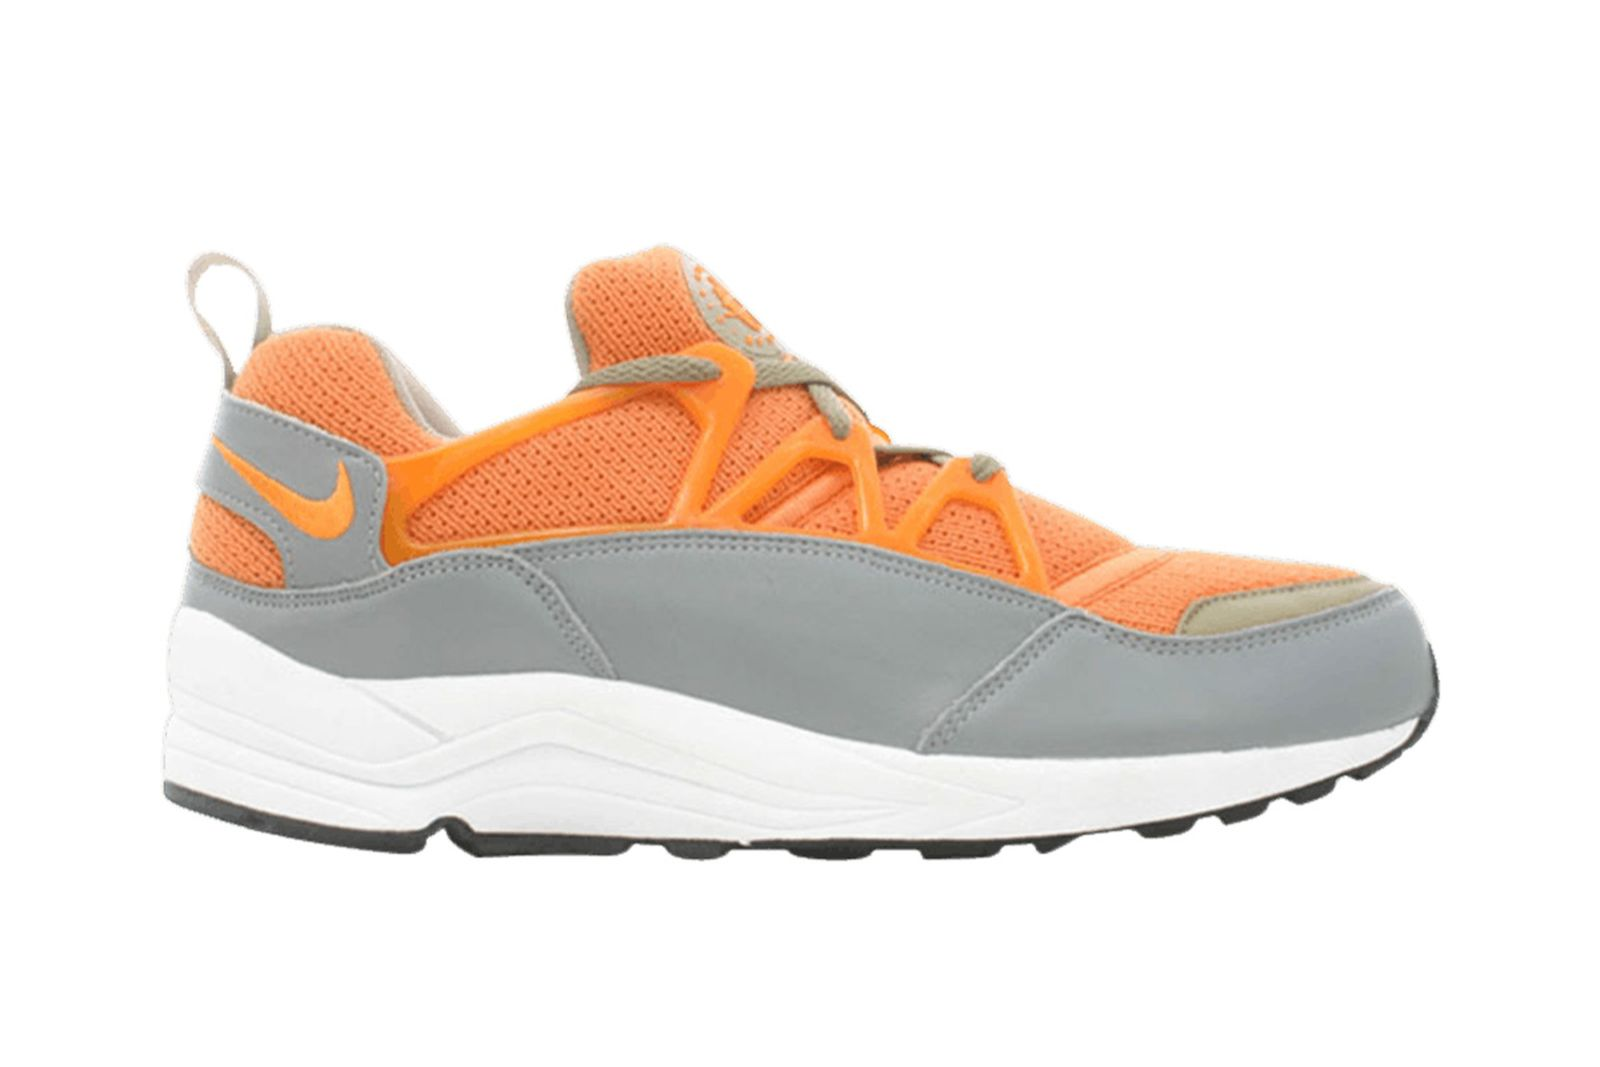 stussy-nike-sneaker-collaboration-roundup-03